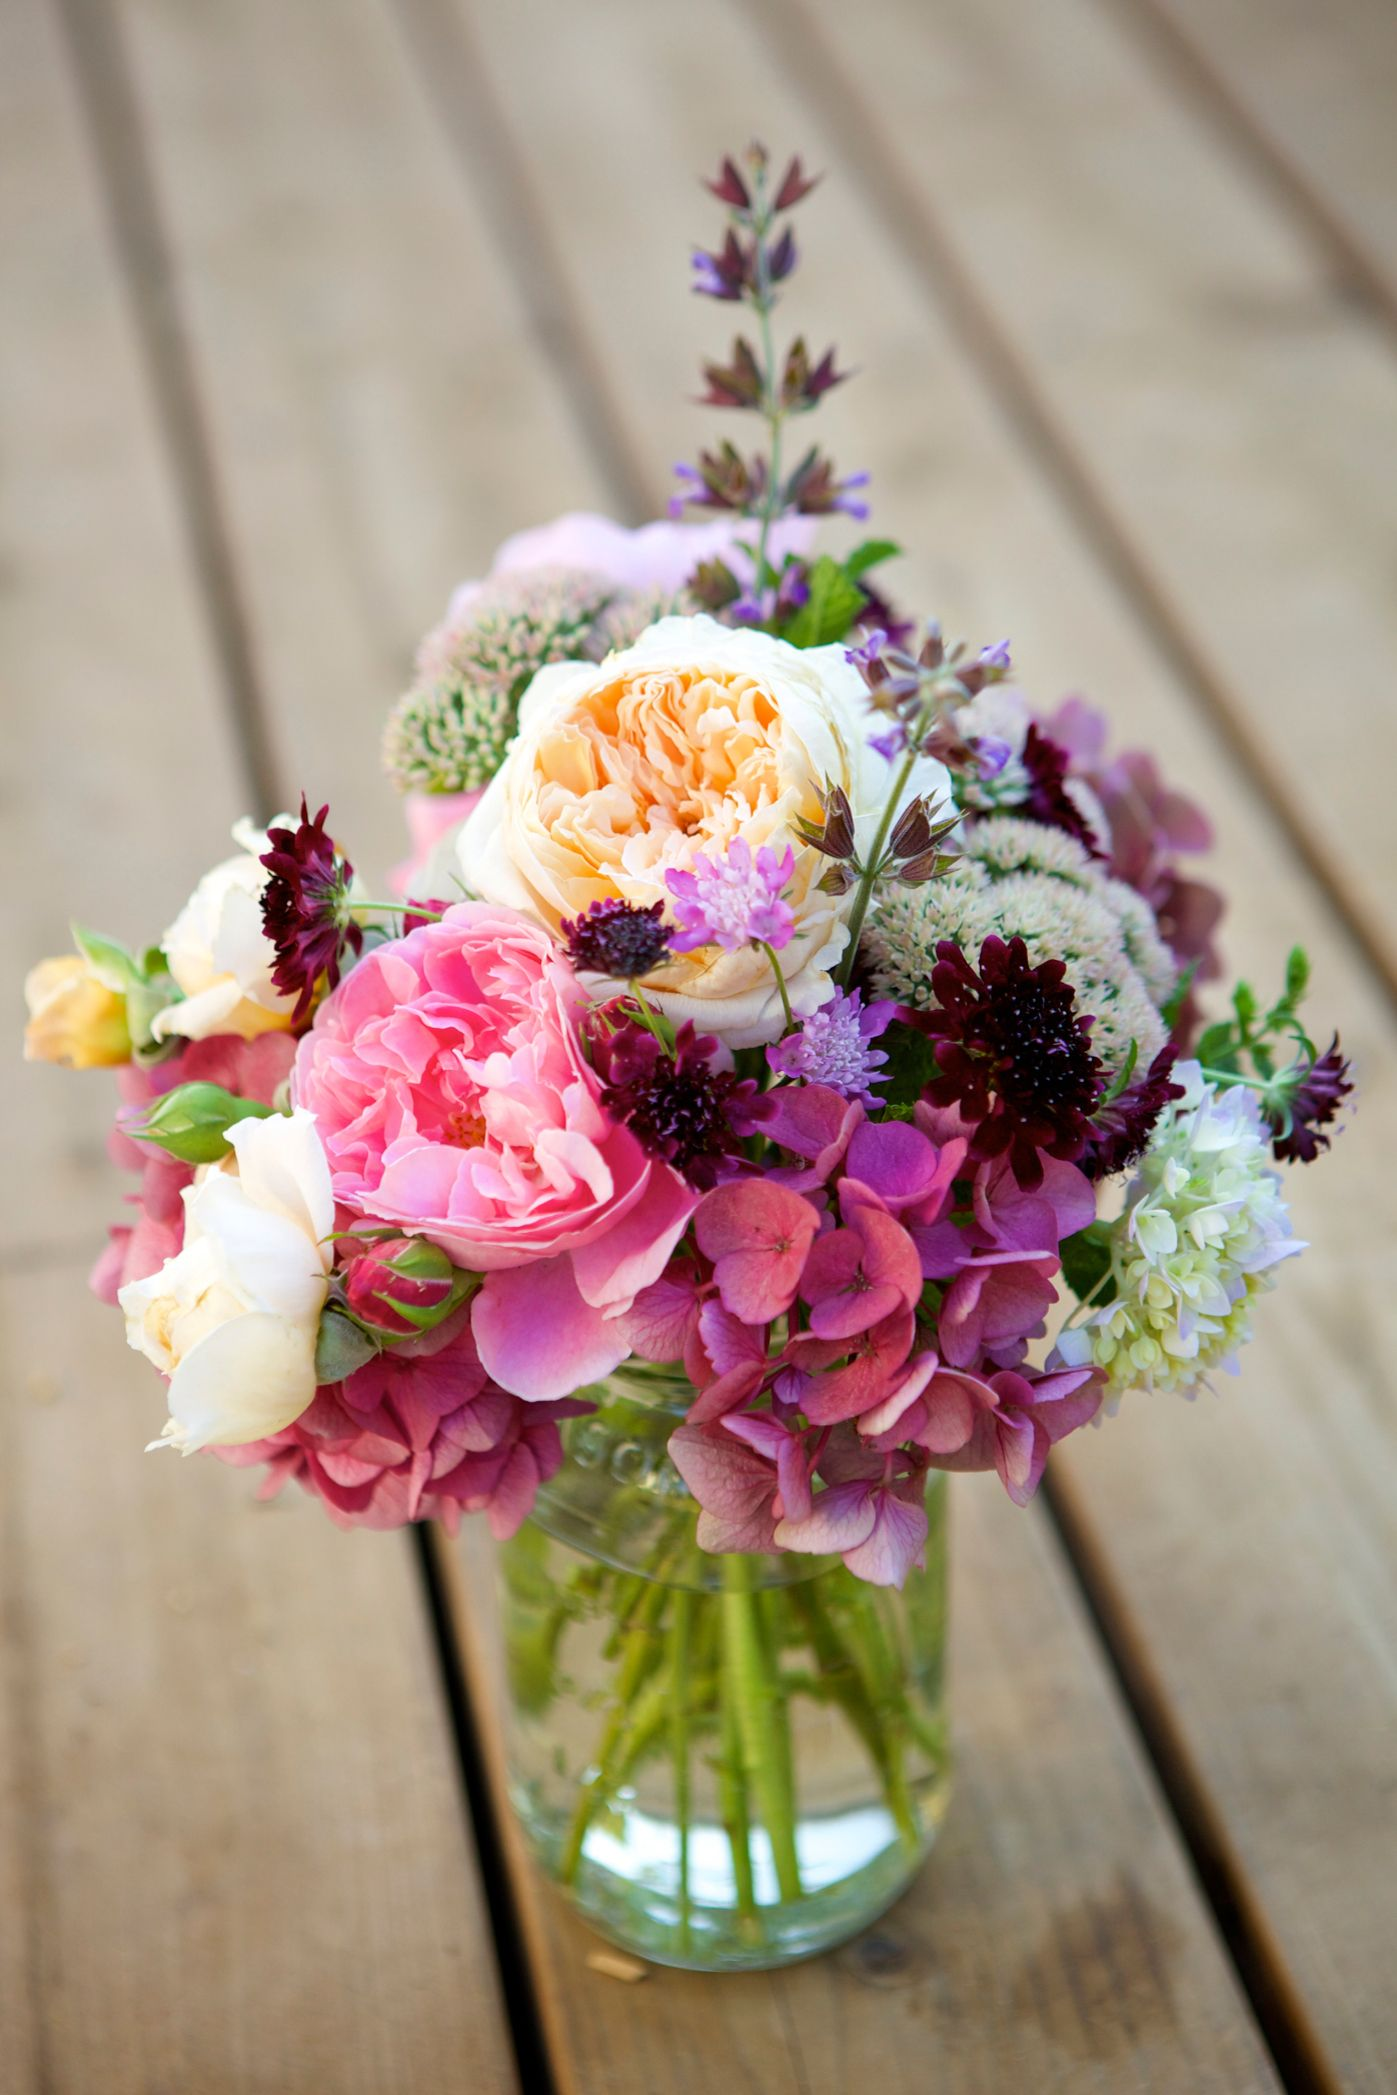 40 Easy Floral Arrangement Ideas - Creative DIY Flower Arrangements